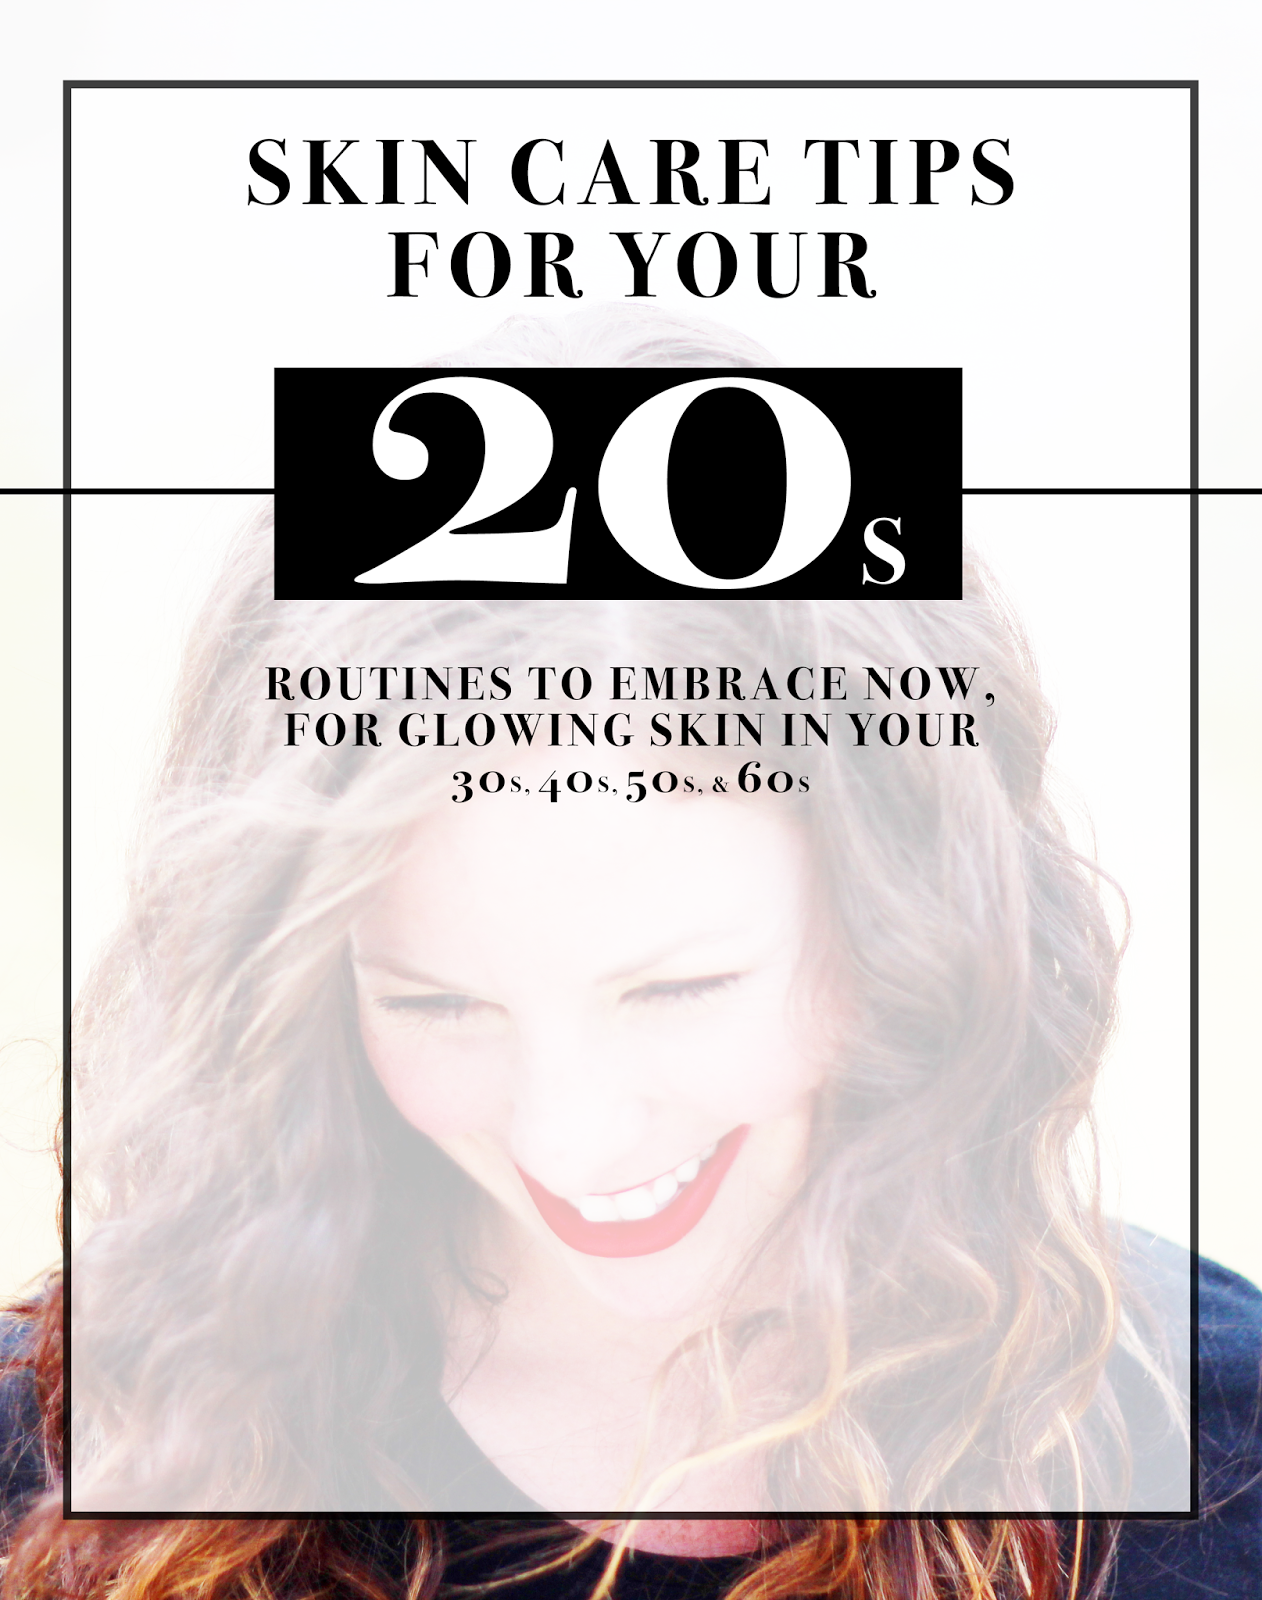 9 Skin Care Tips And Routines For Your 20s Skin Care 20s Skin Care Tips Facial Skin